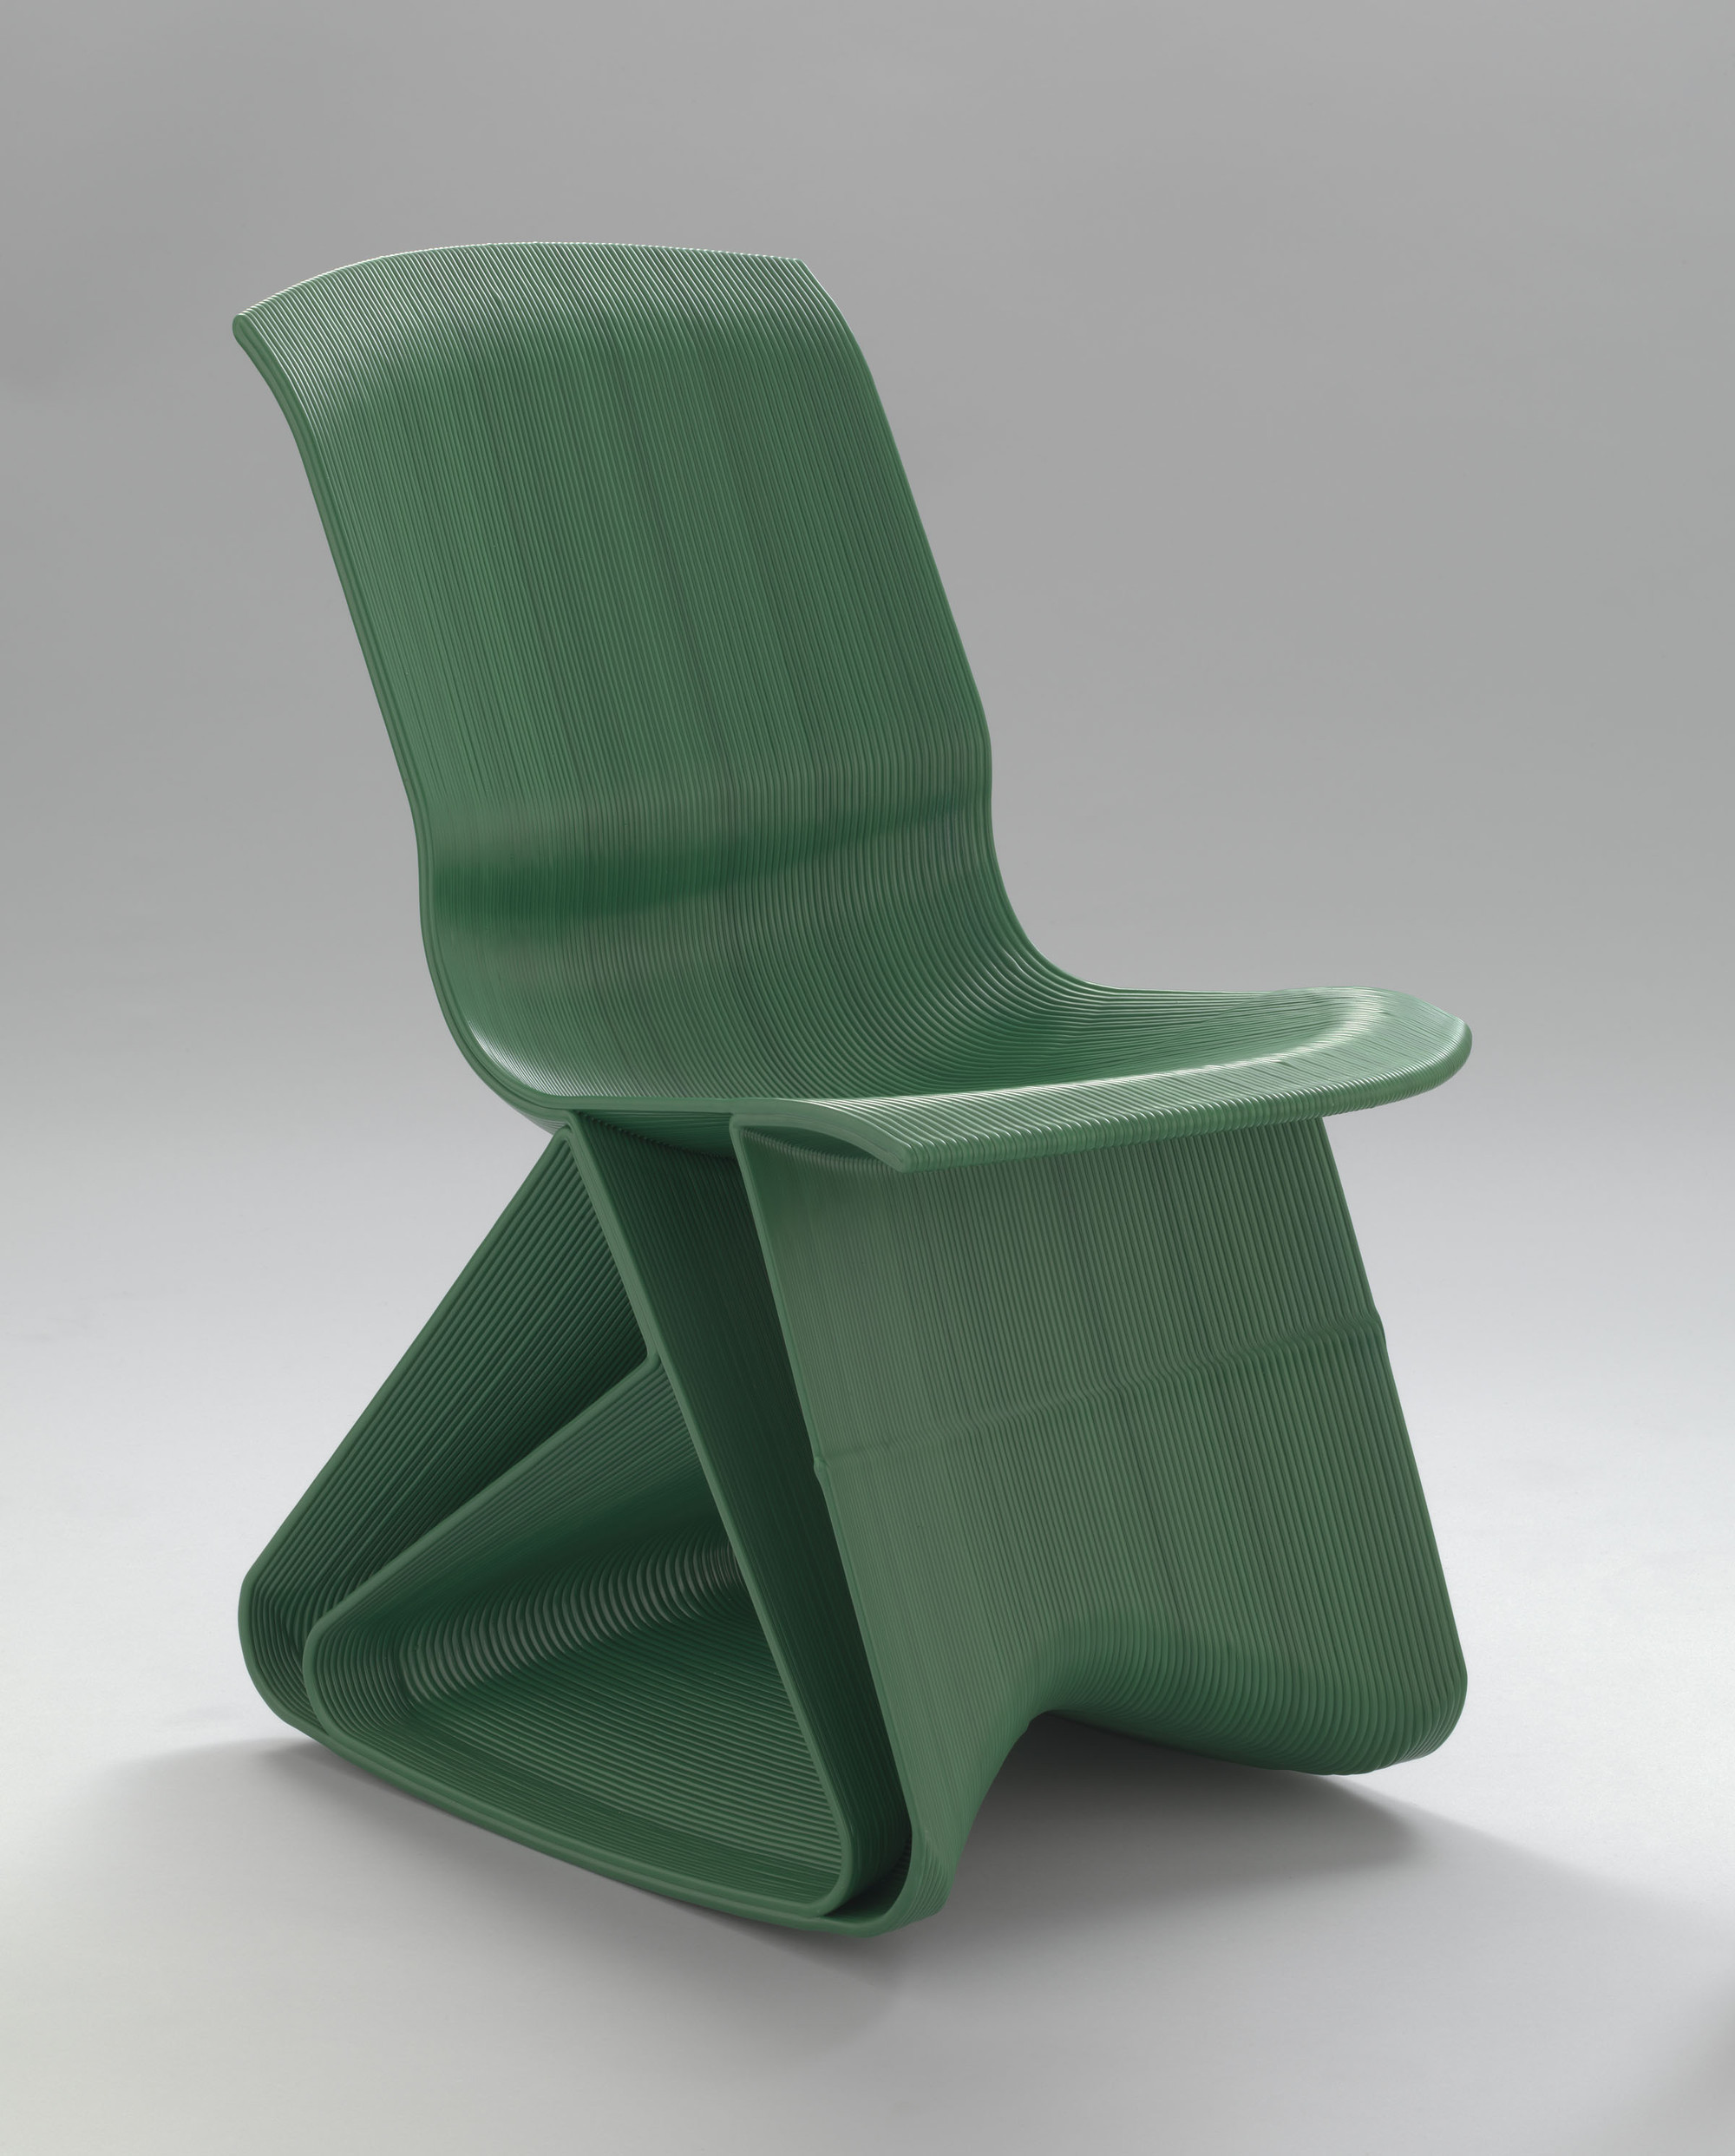 Pleasant Gallery Of Moma Applied Design 4 Spiritservingveterans Wood Chair Design Ideas Spiritservingveteransorg